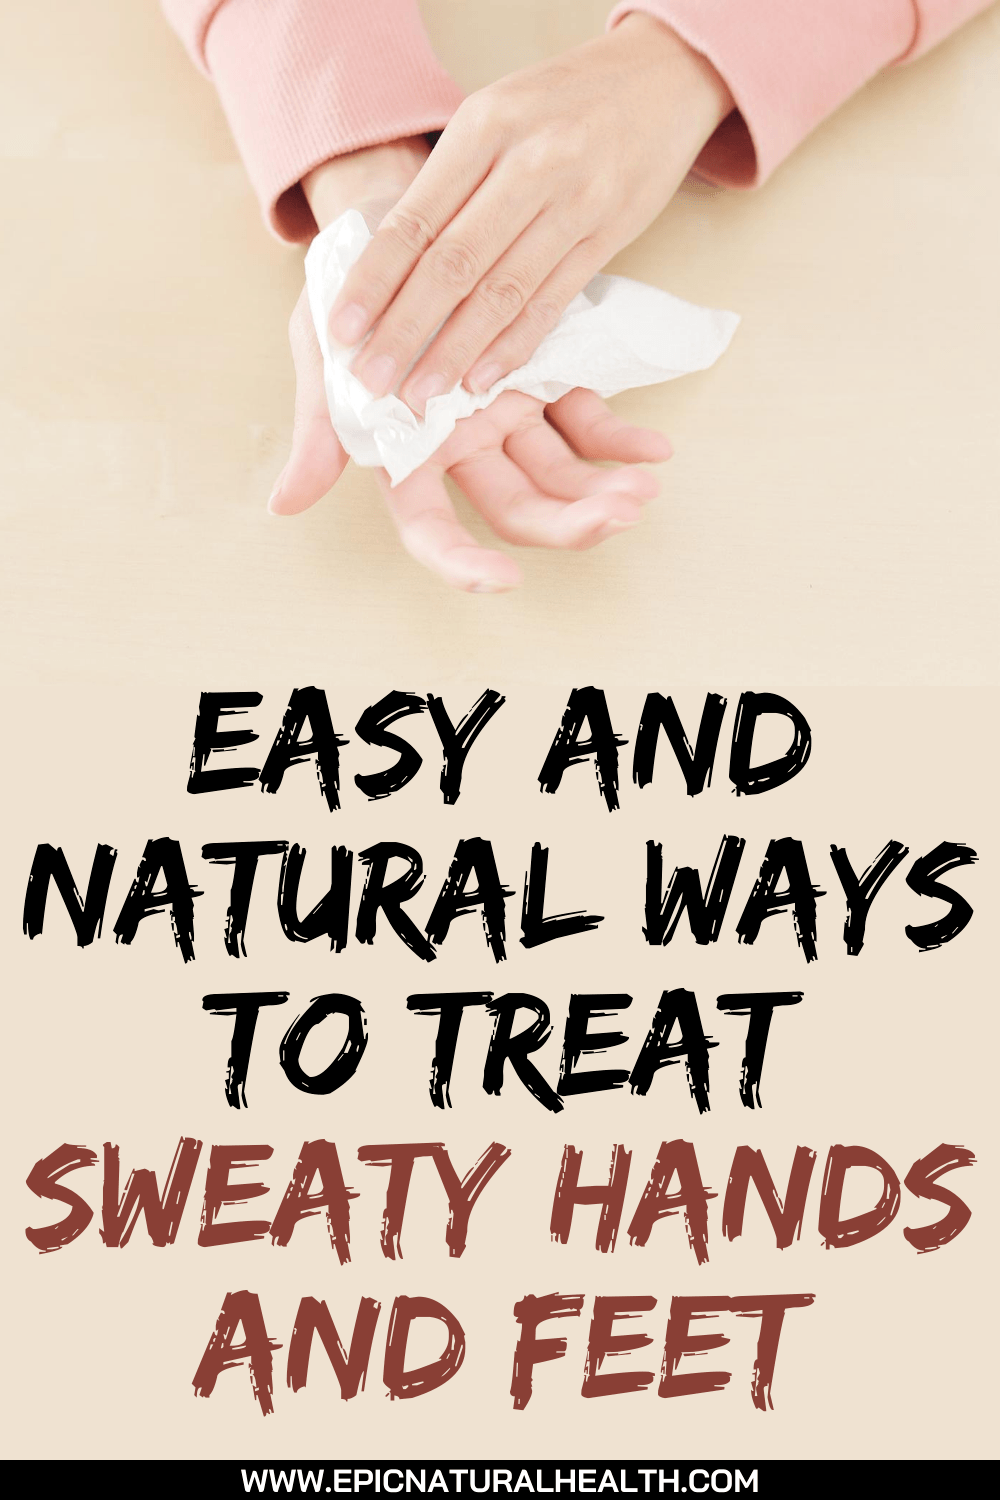 easy and natural ways to treat sweaty hands and feet